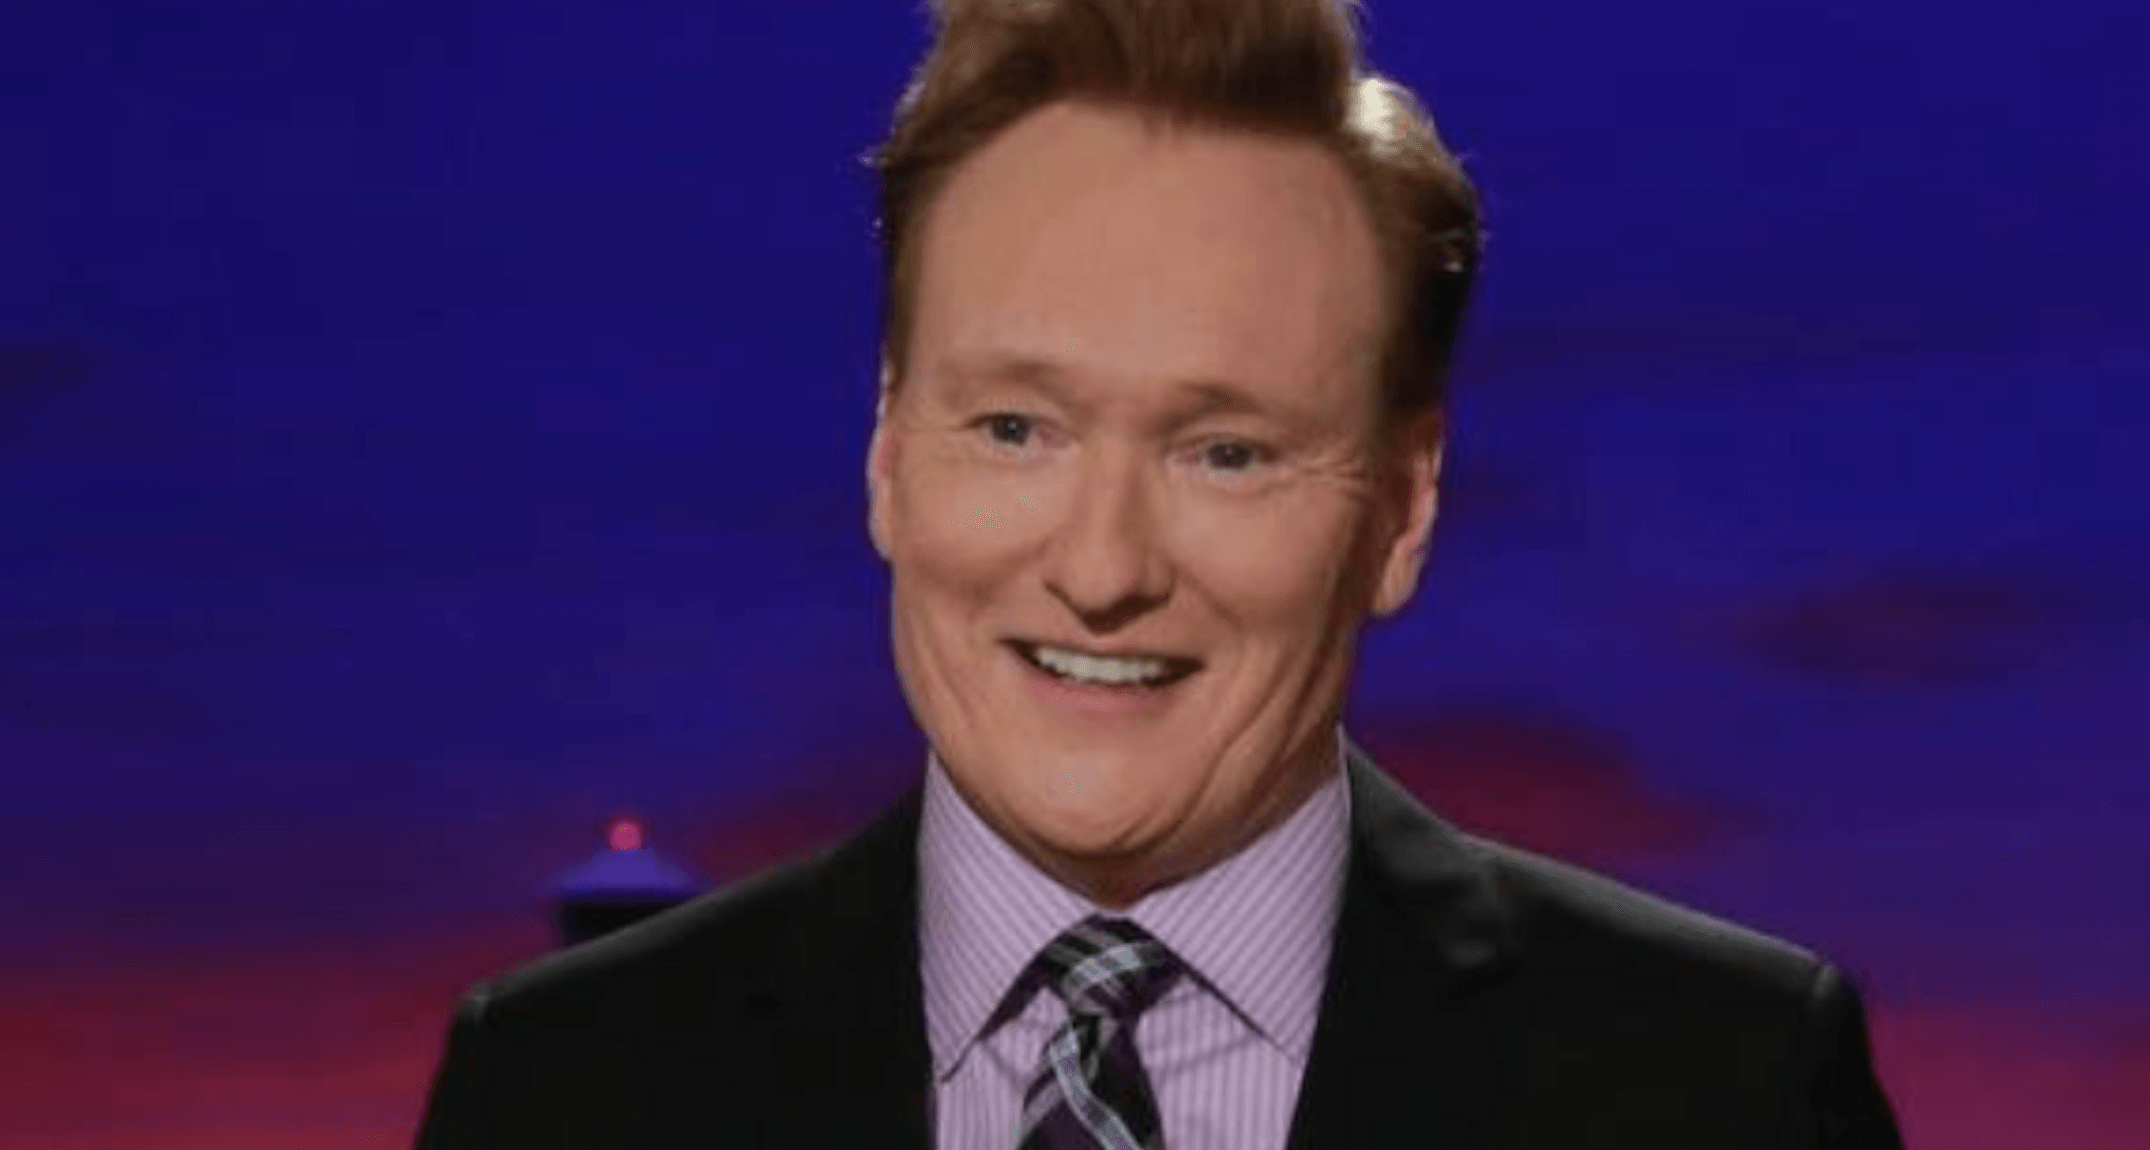 Conan O'Brien's new comedy tour is coming to Vancouver this winter